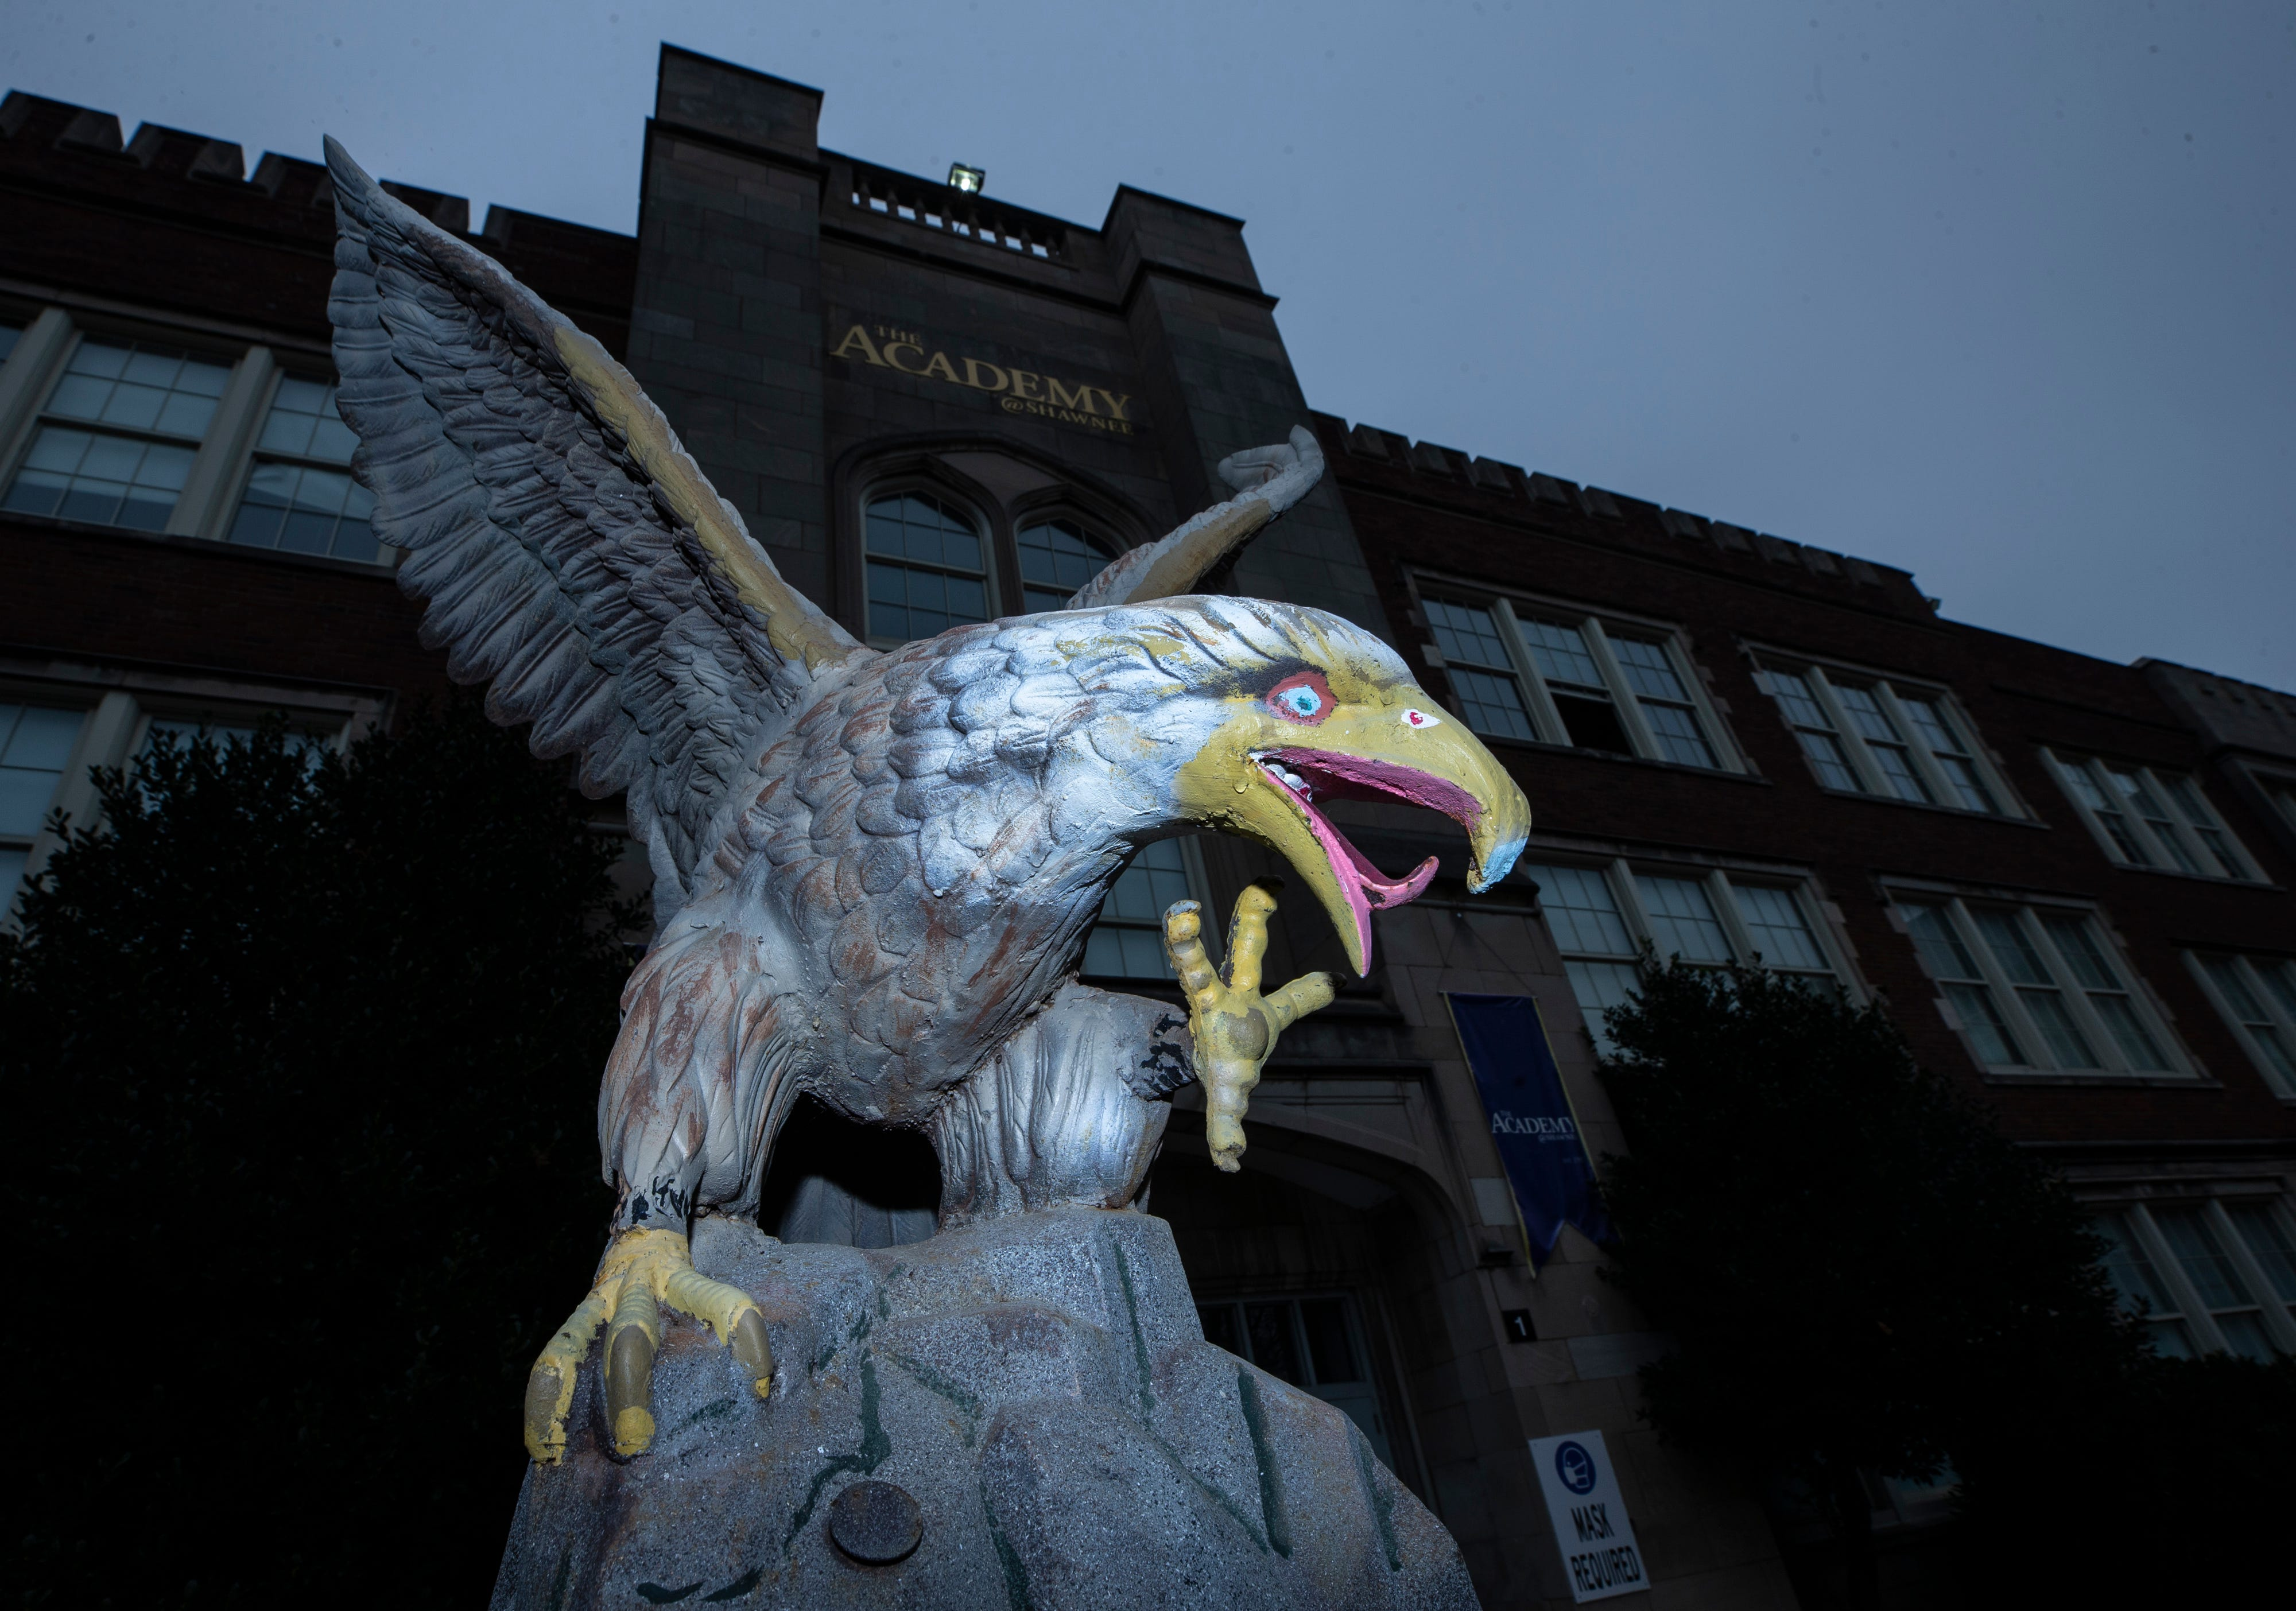 The golden eagle mascot greets everyone entering the Academy @ Shawnee in west Louisville.